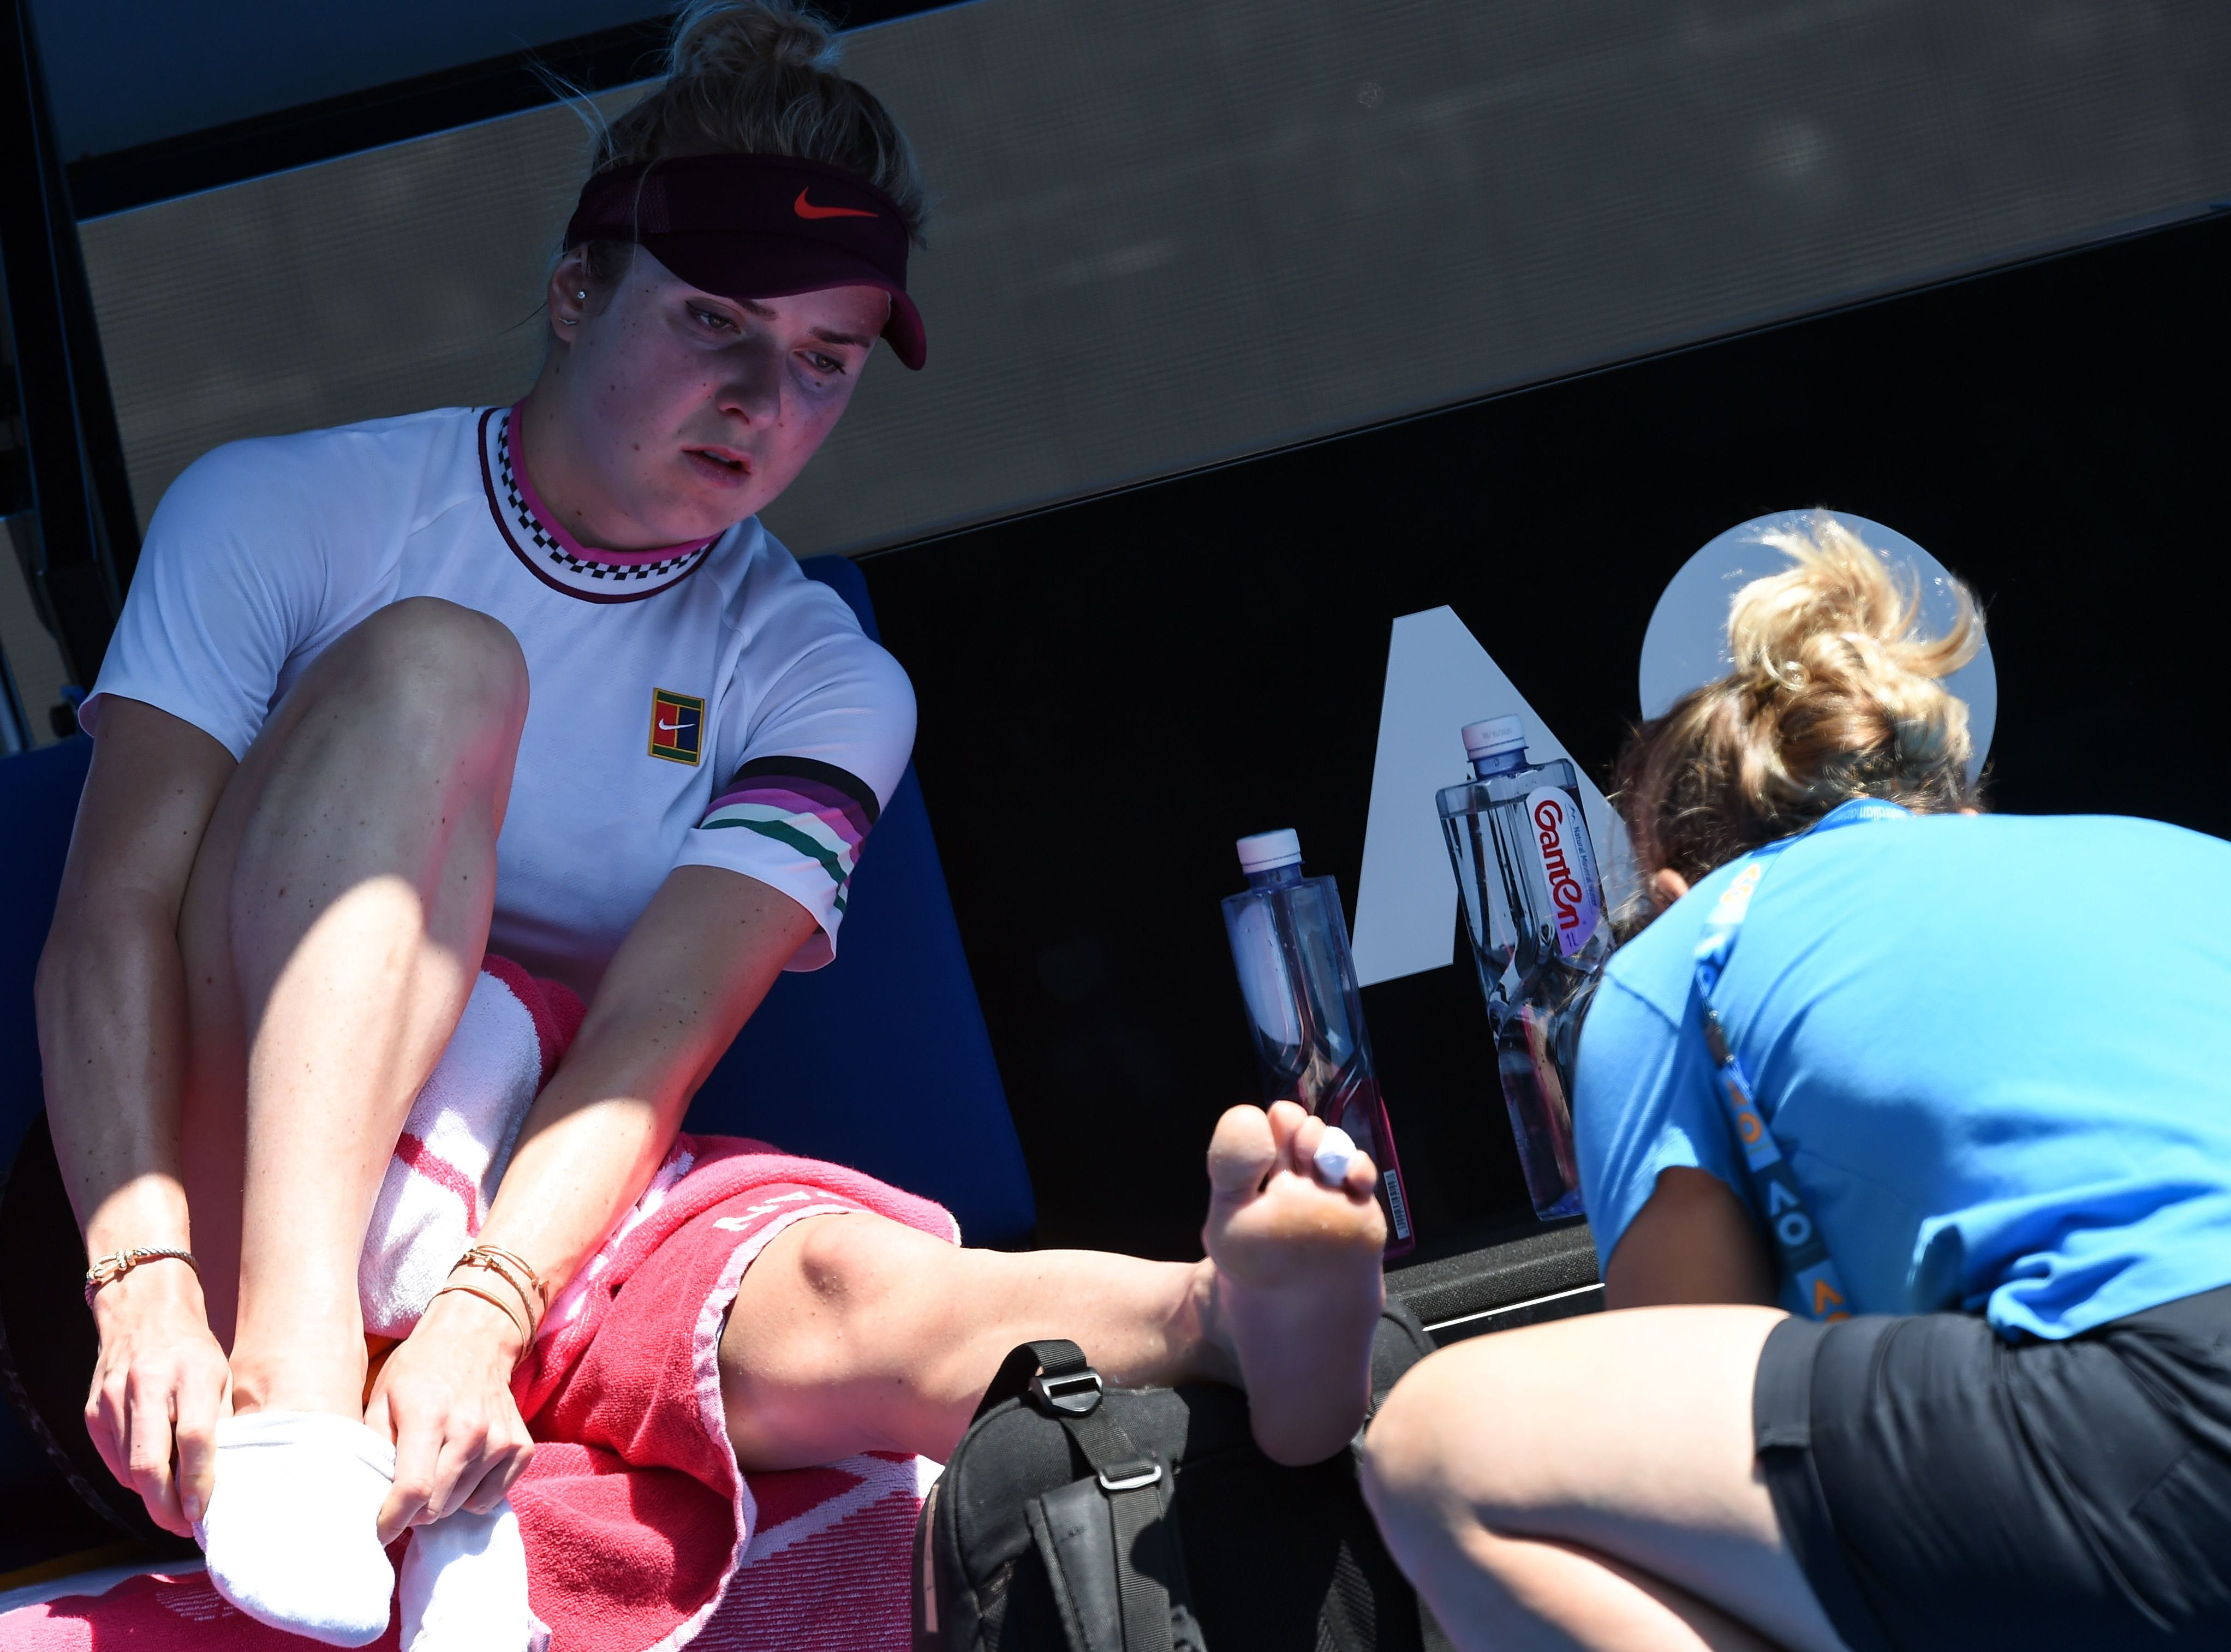 Ukraine's Elina Svitolina gets medical treatment on her foot during her Round of 16 match against American Madison Keys.